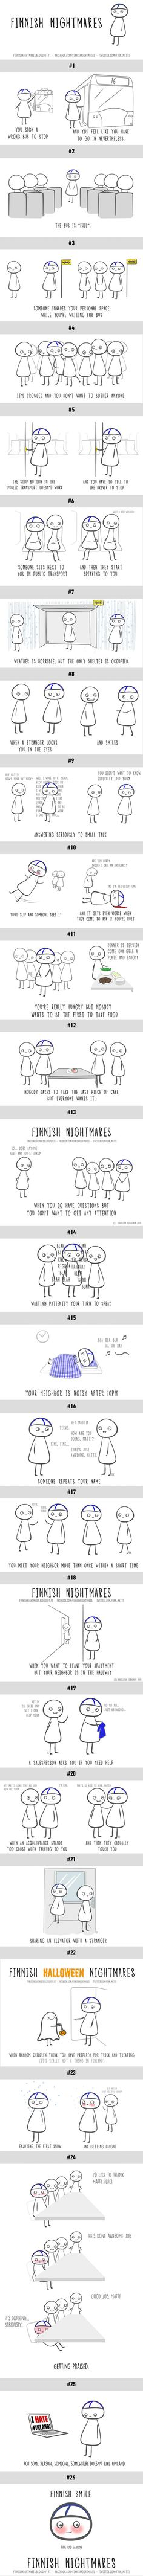 26 Comics Of Finnish Nightmares Even Non-Finns Can Relate To (By Karoliina Korhonen) - 9GAG